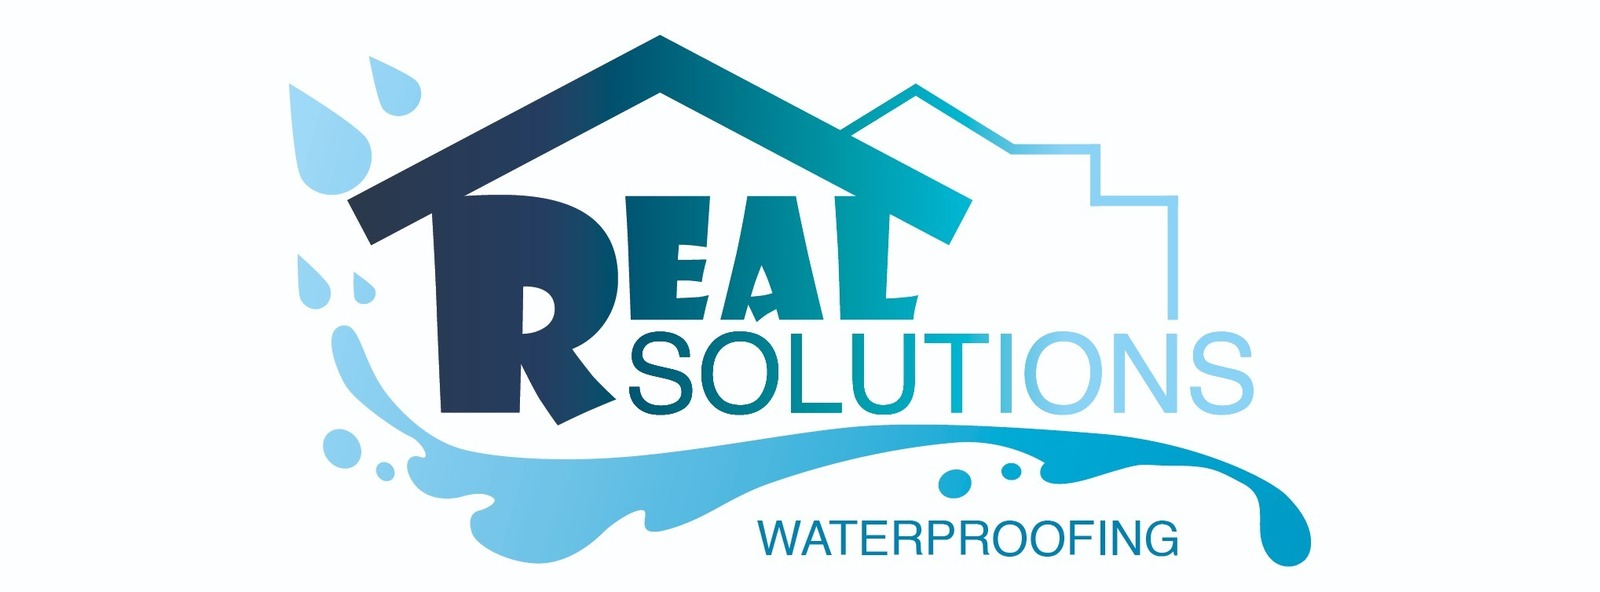 Real Solutions Waterproofing Resources